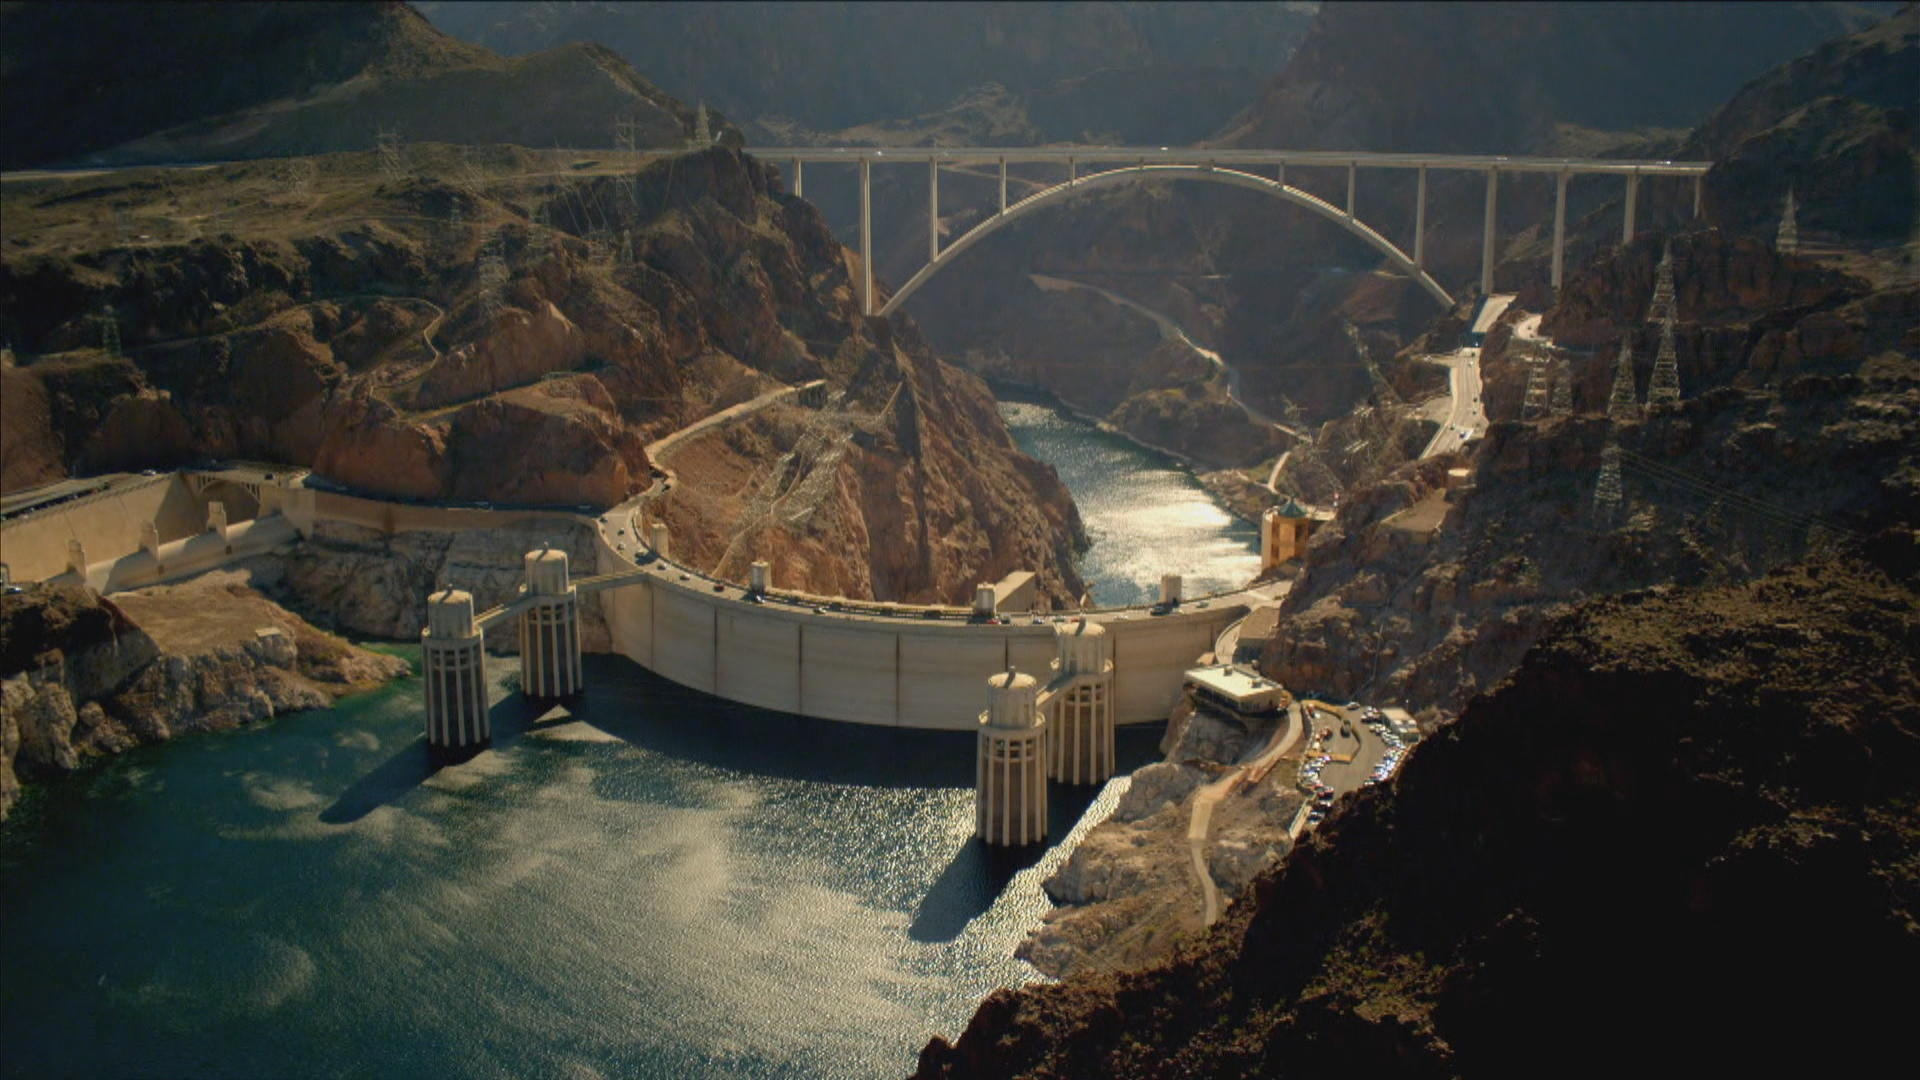 Hoover Dam: $3 billion project hopes to turn power plant